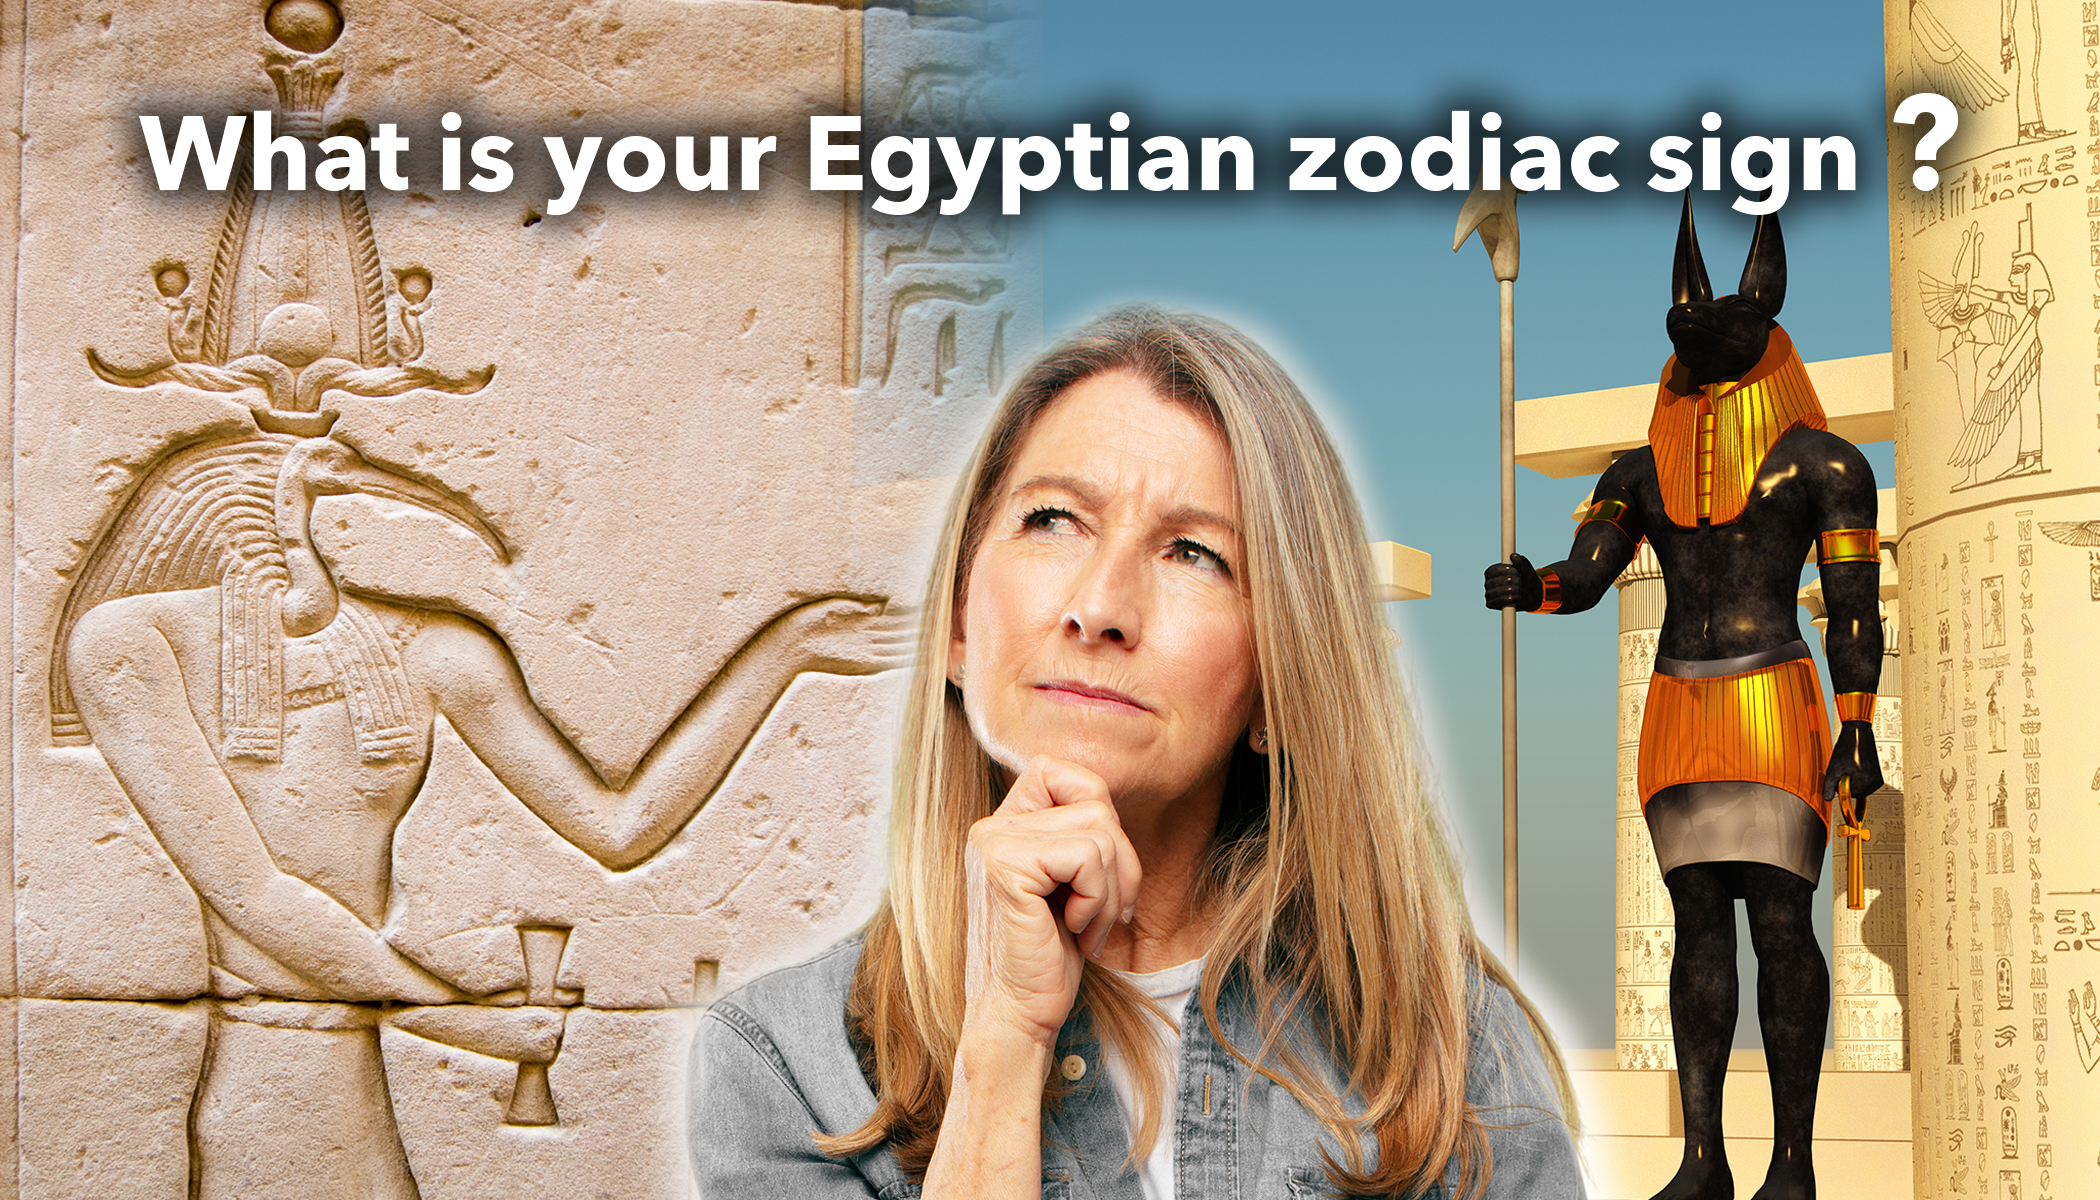 Ancient Egyptians Had Totally Different Set of Zodiac Signs, Find Out What's Yours